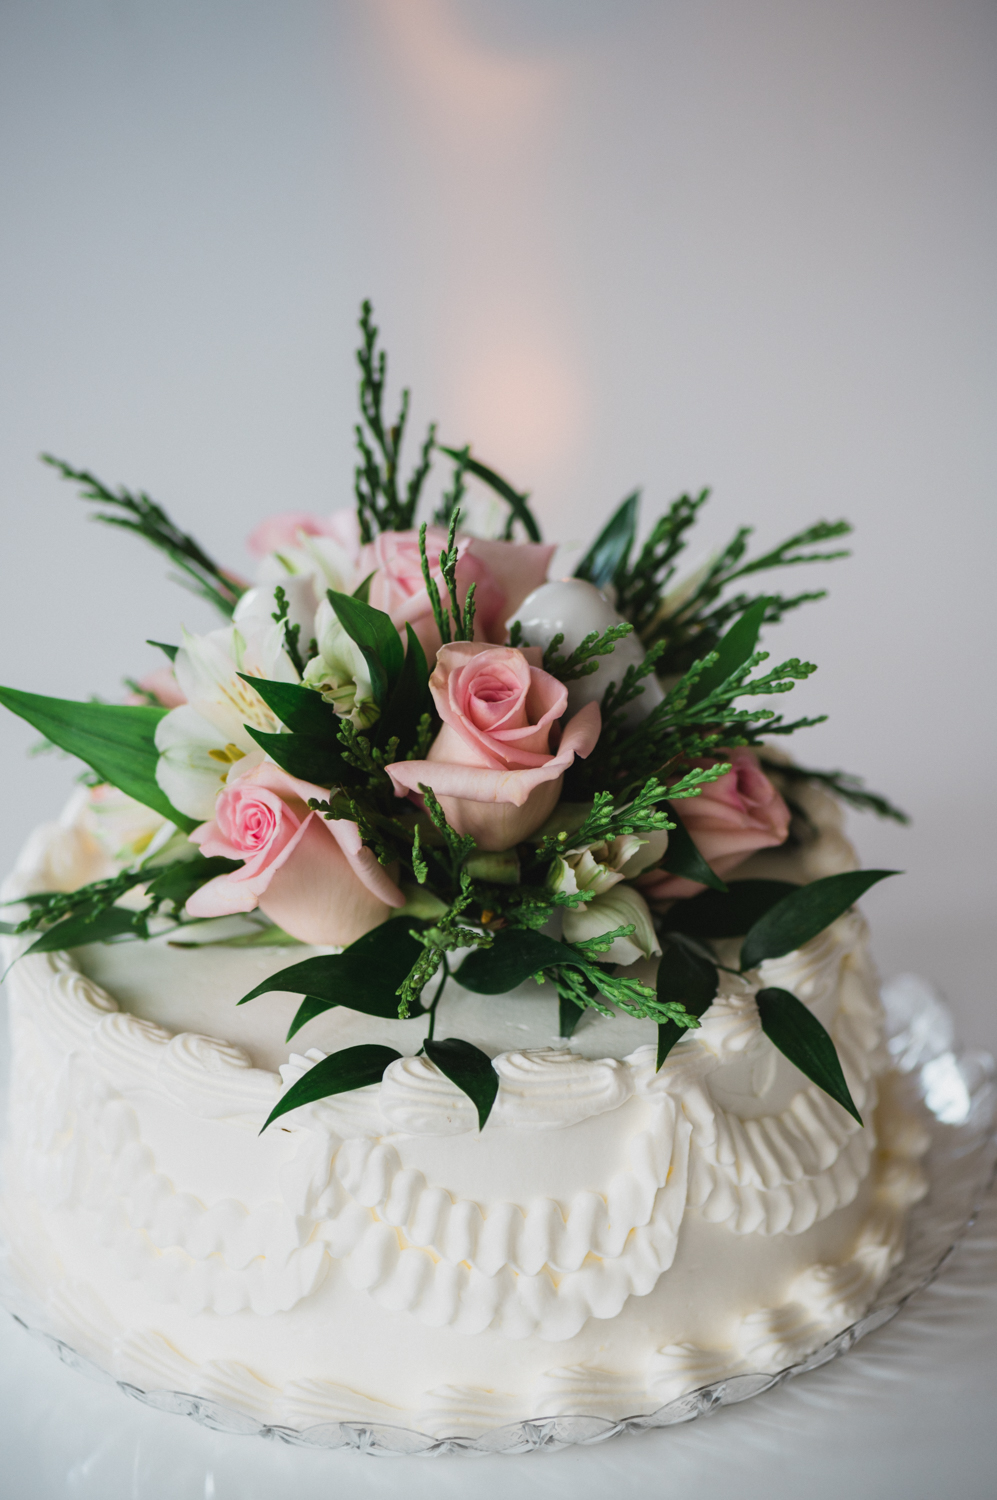 len_lynne_wedding_cake_edgartown-1573.jpg